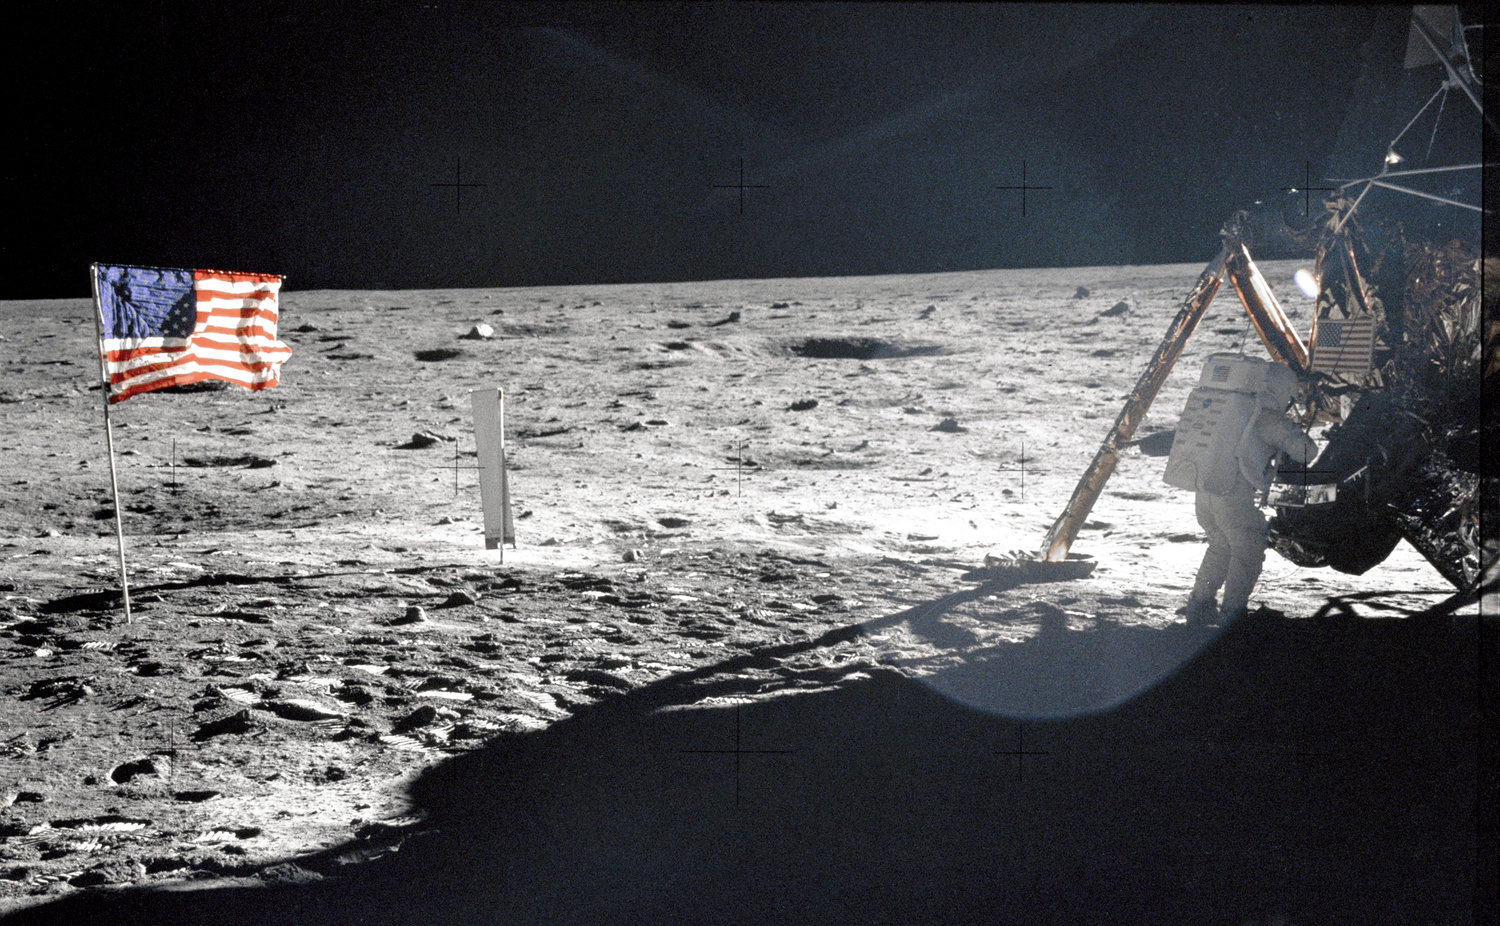 Saturday, July 20, will mark the 50th anniversary of Neil Armstrong's first steps on the moon's surface.